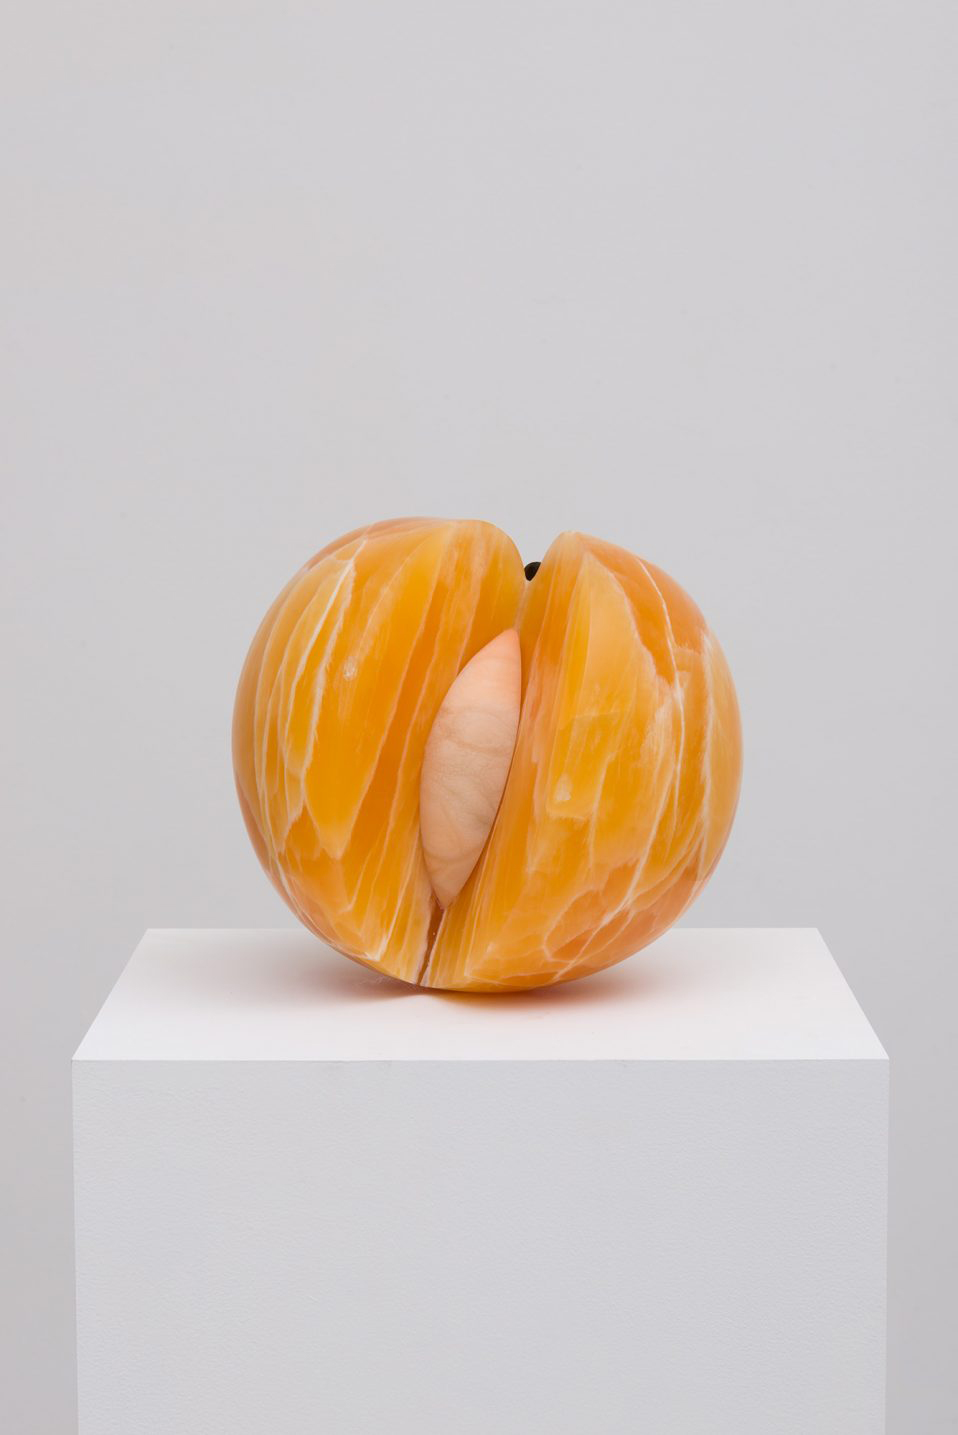 Semi Precious Stone Sculptures by Nevine Mahmoud | Yellowtrace